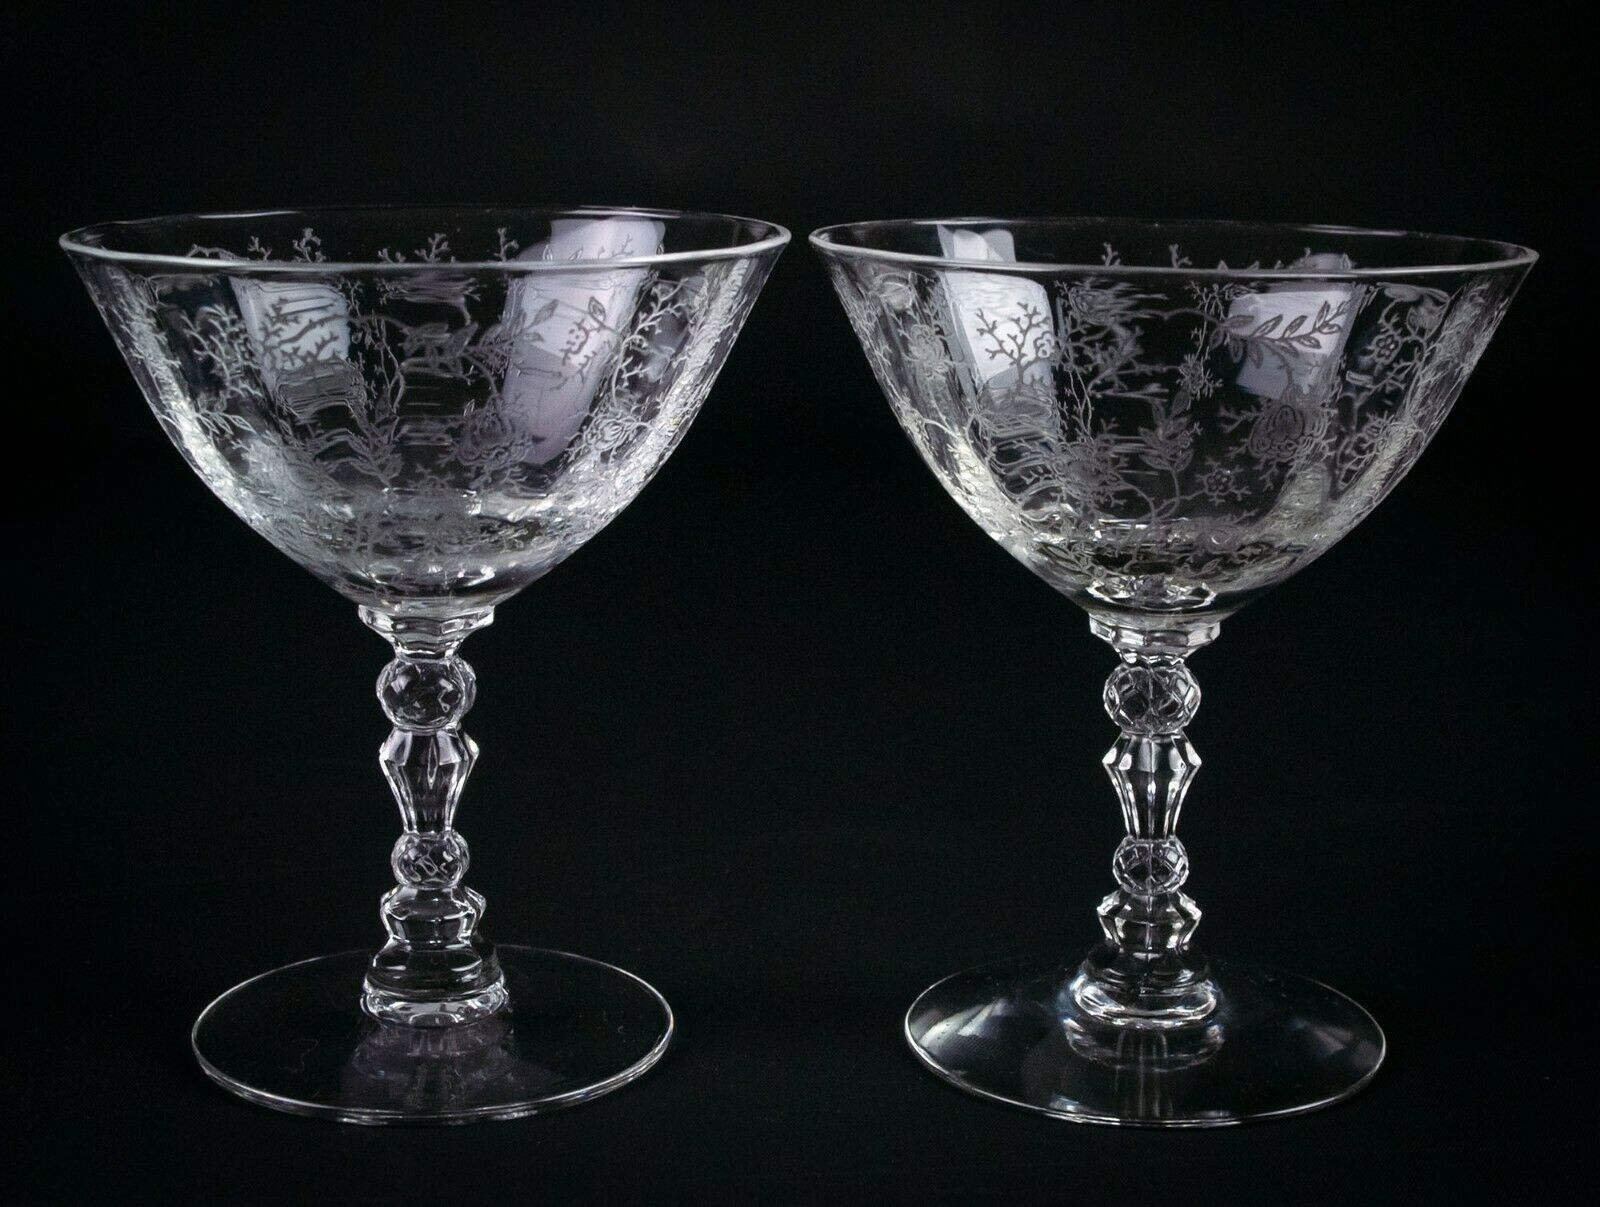 Primary image for Fostoria Chintz Low Sherbet Glasses 2 pc Set, Vintage Elegant Etched Champagne